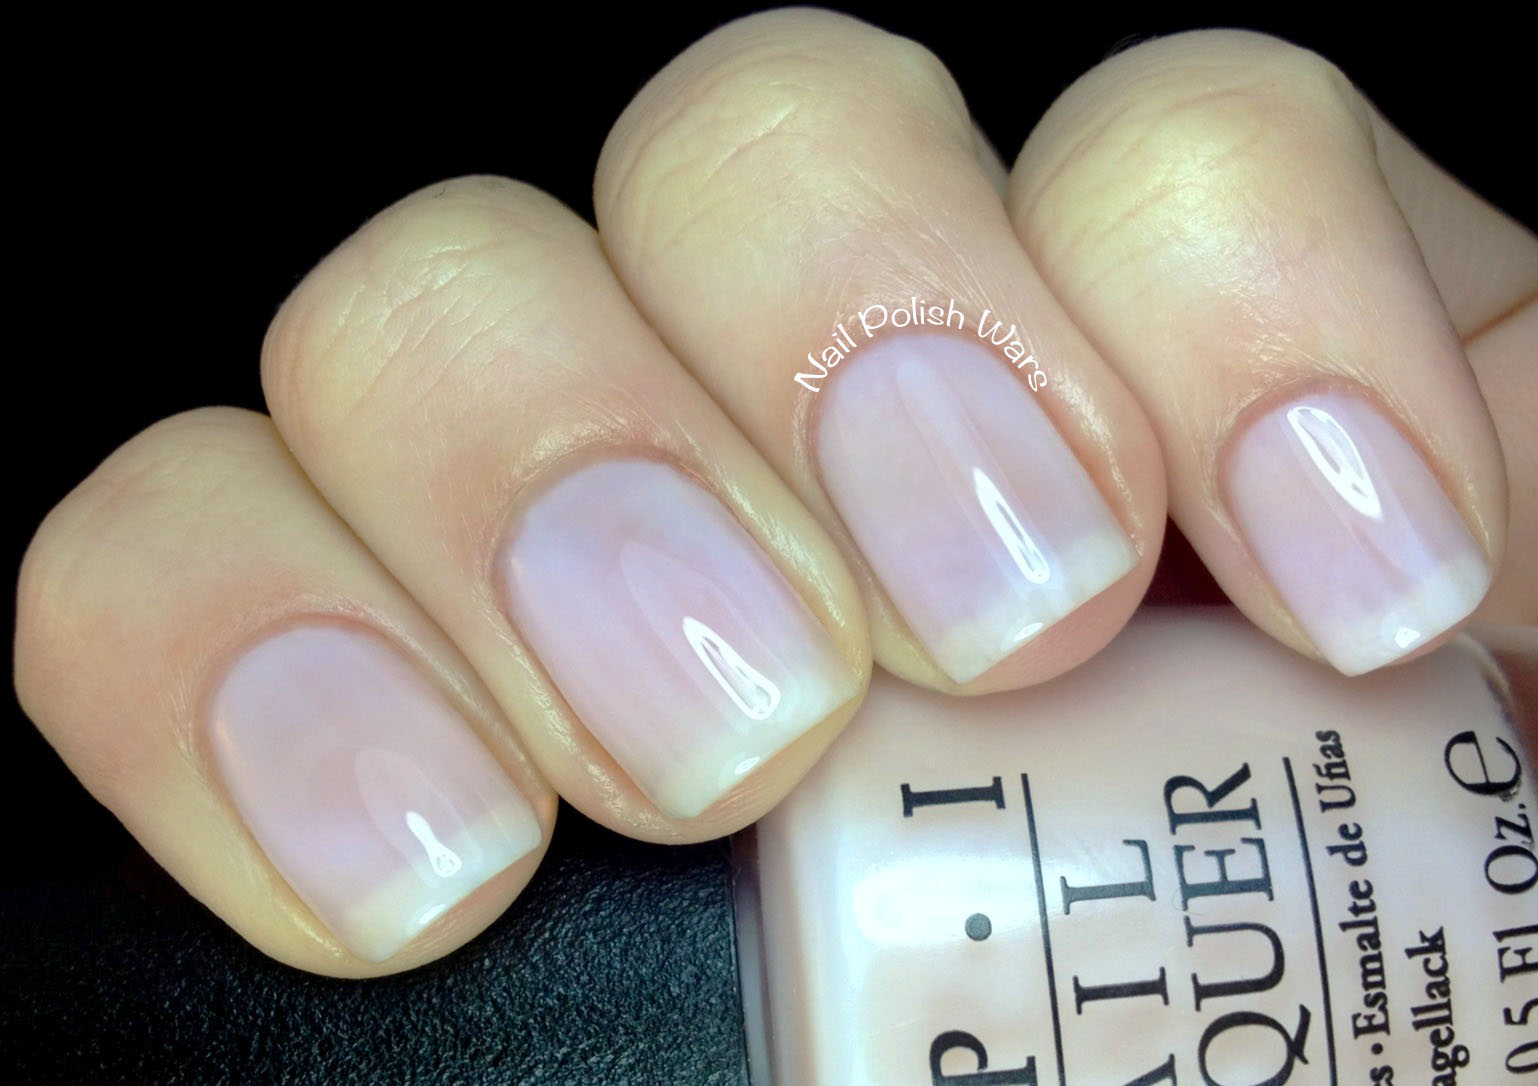 OPI Oz The Great and Powerful Swatch & Review | Nail Polish Wars ...